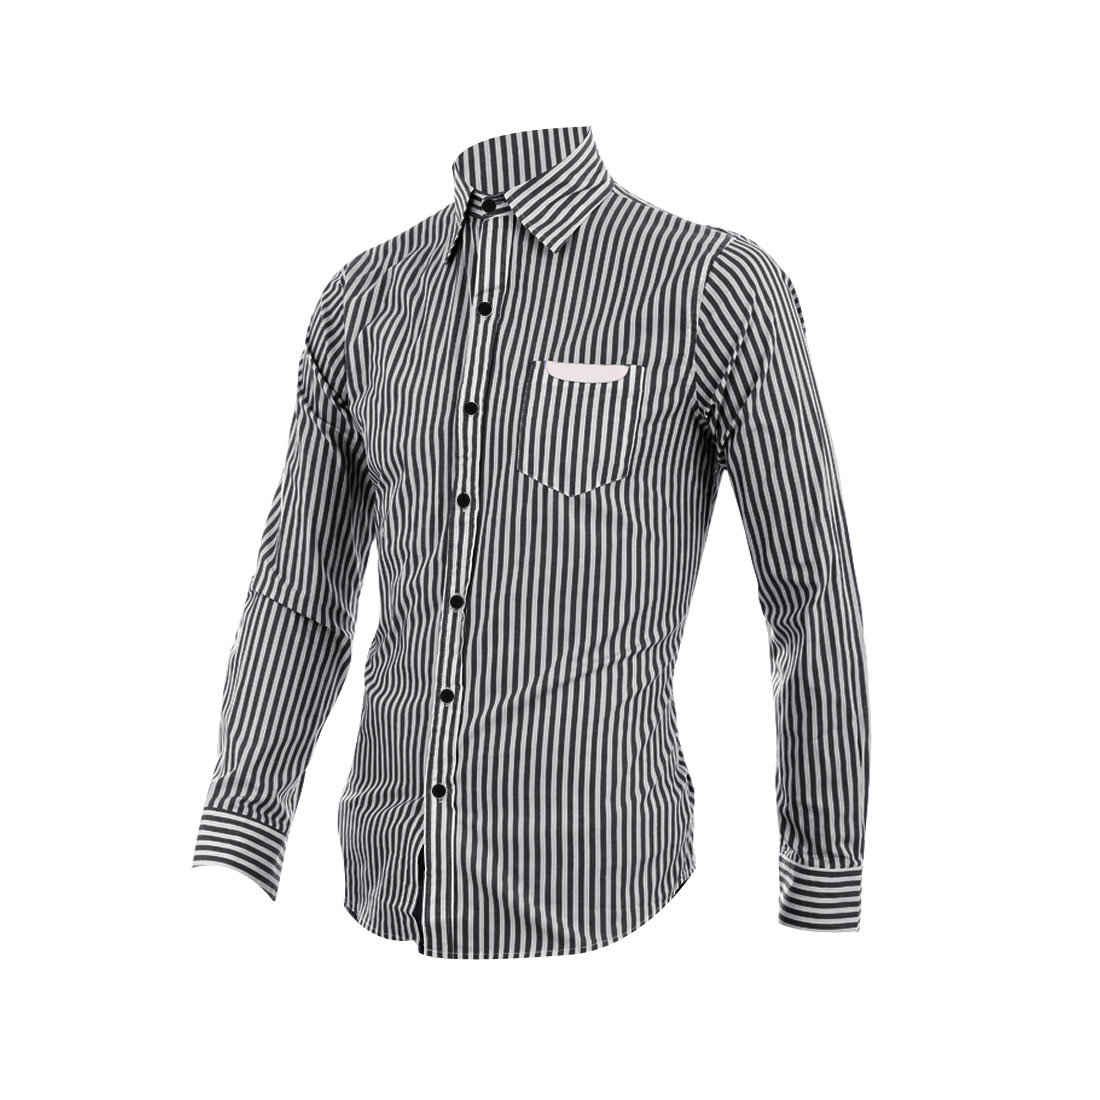 Mens Point Collar Black White Stripes Pattern Button Down Casual Shirt M